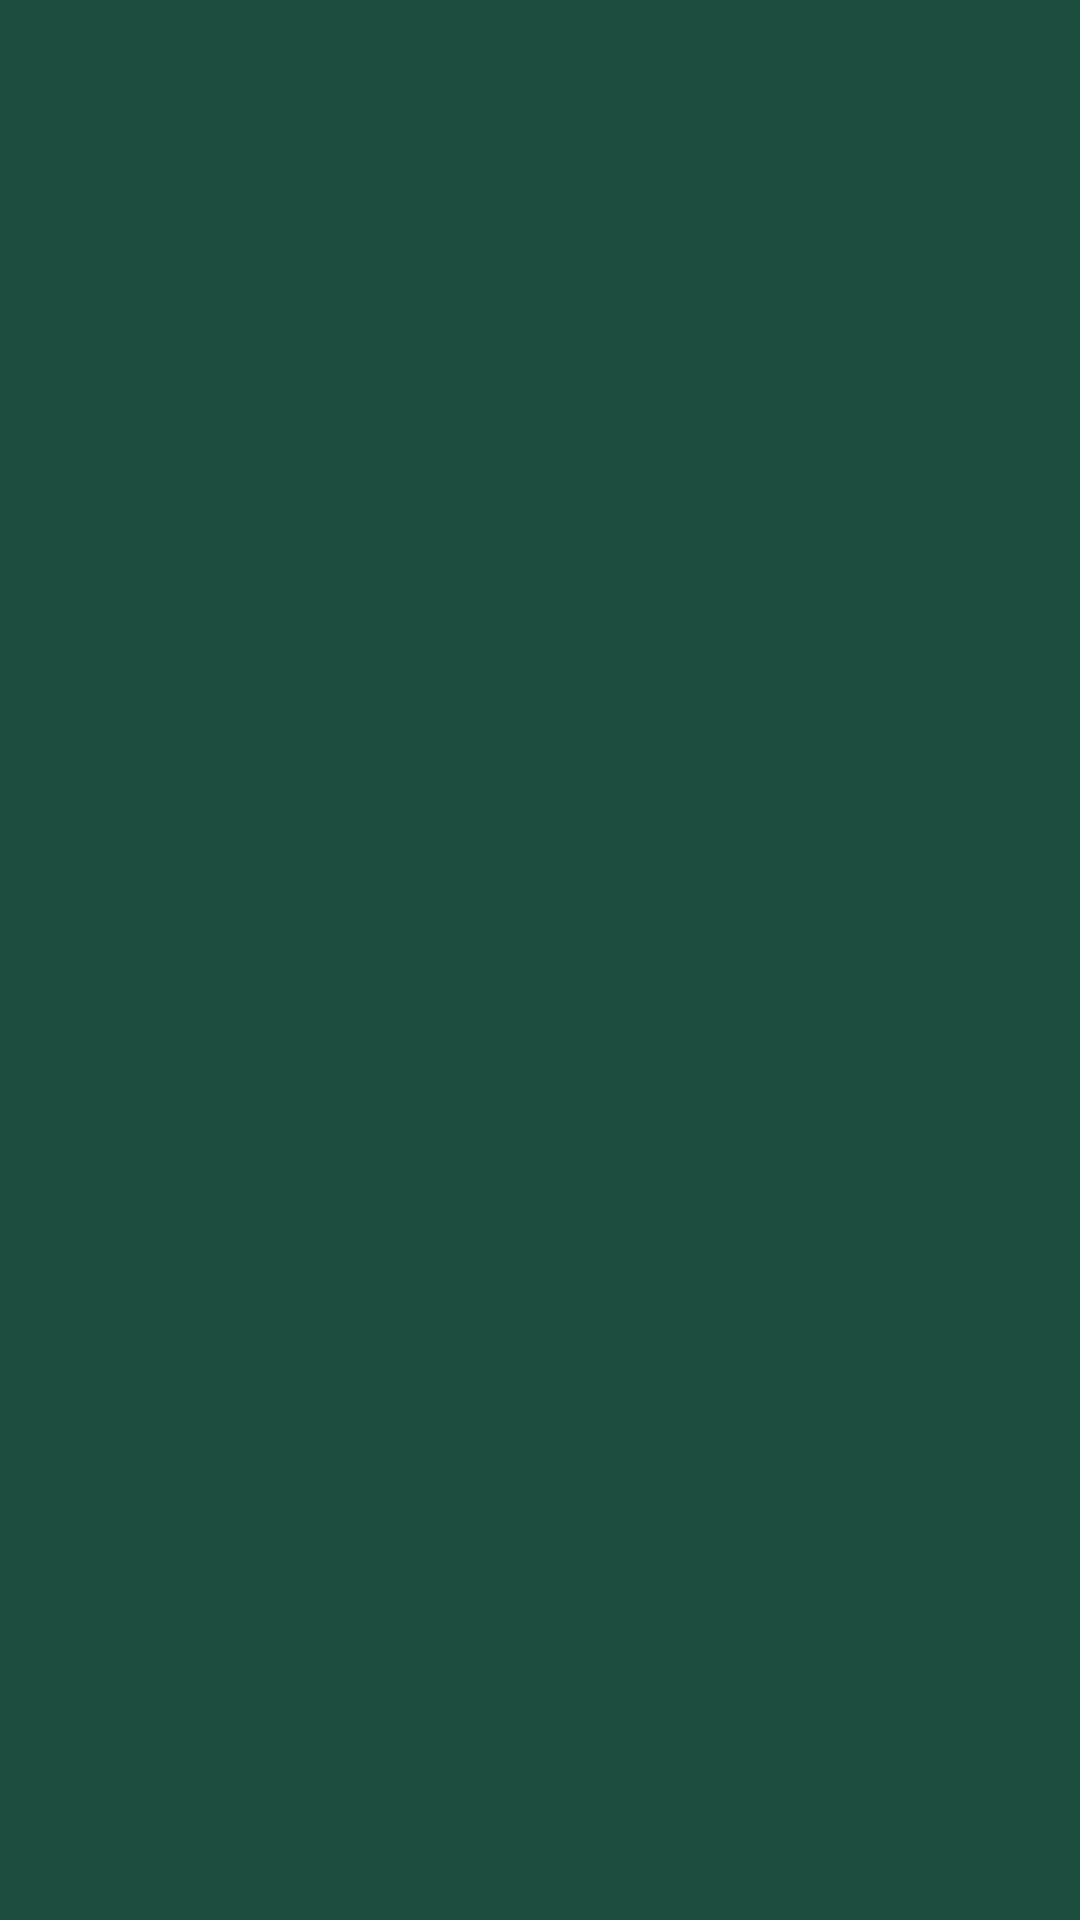 1080x1920 Brunswick Green Solid Color Background